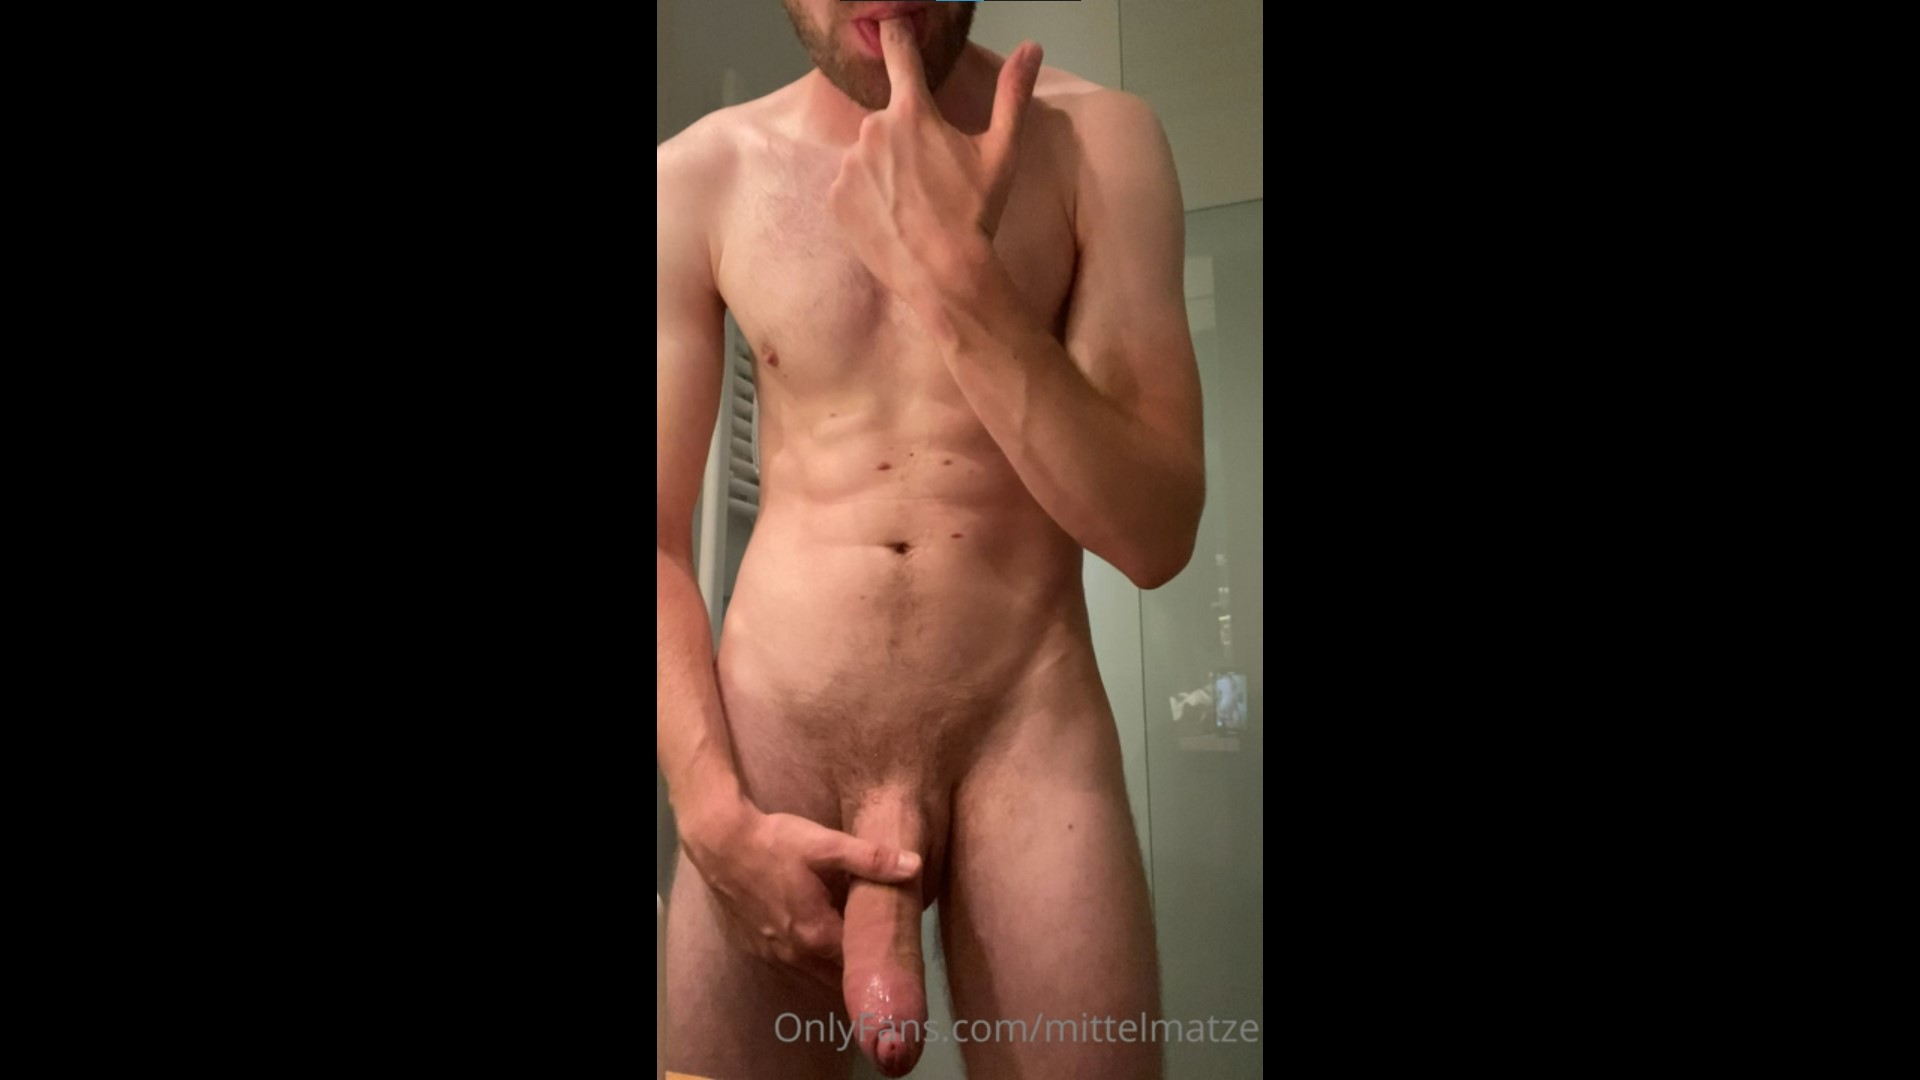 Jerking my big German cock and cumming over myself - MittelMatze